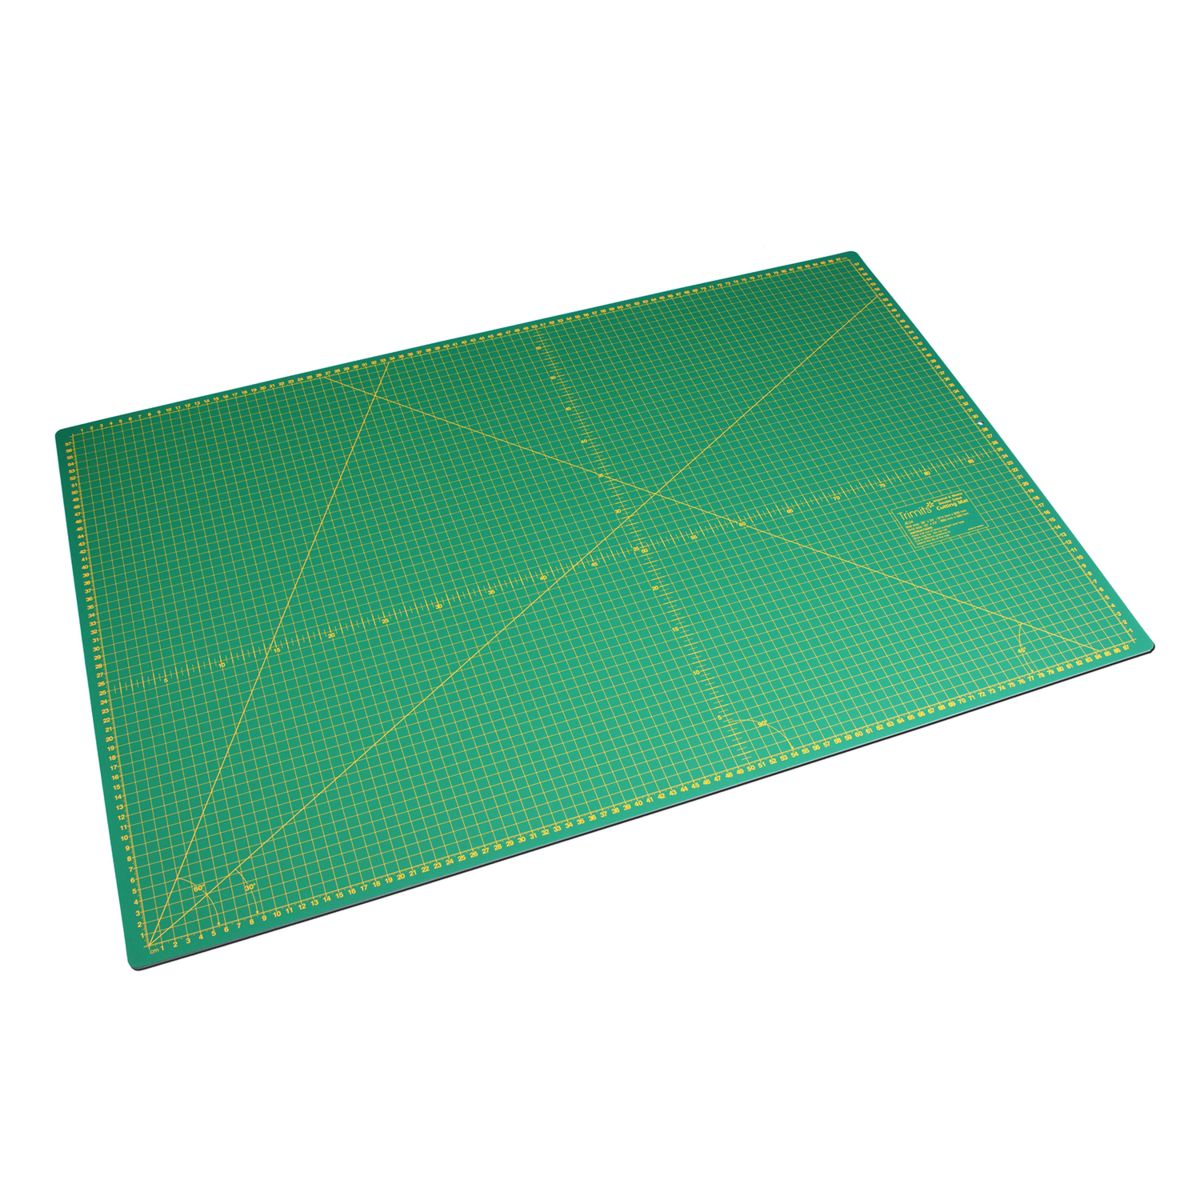 Je24 Cutting Mat Extra Large